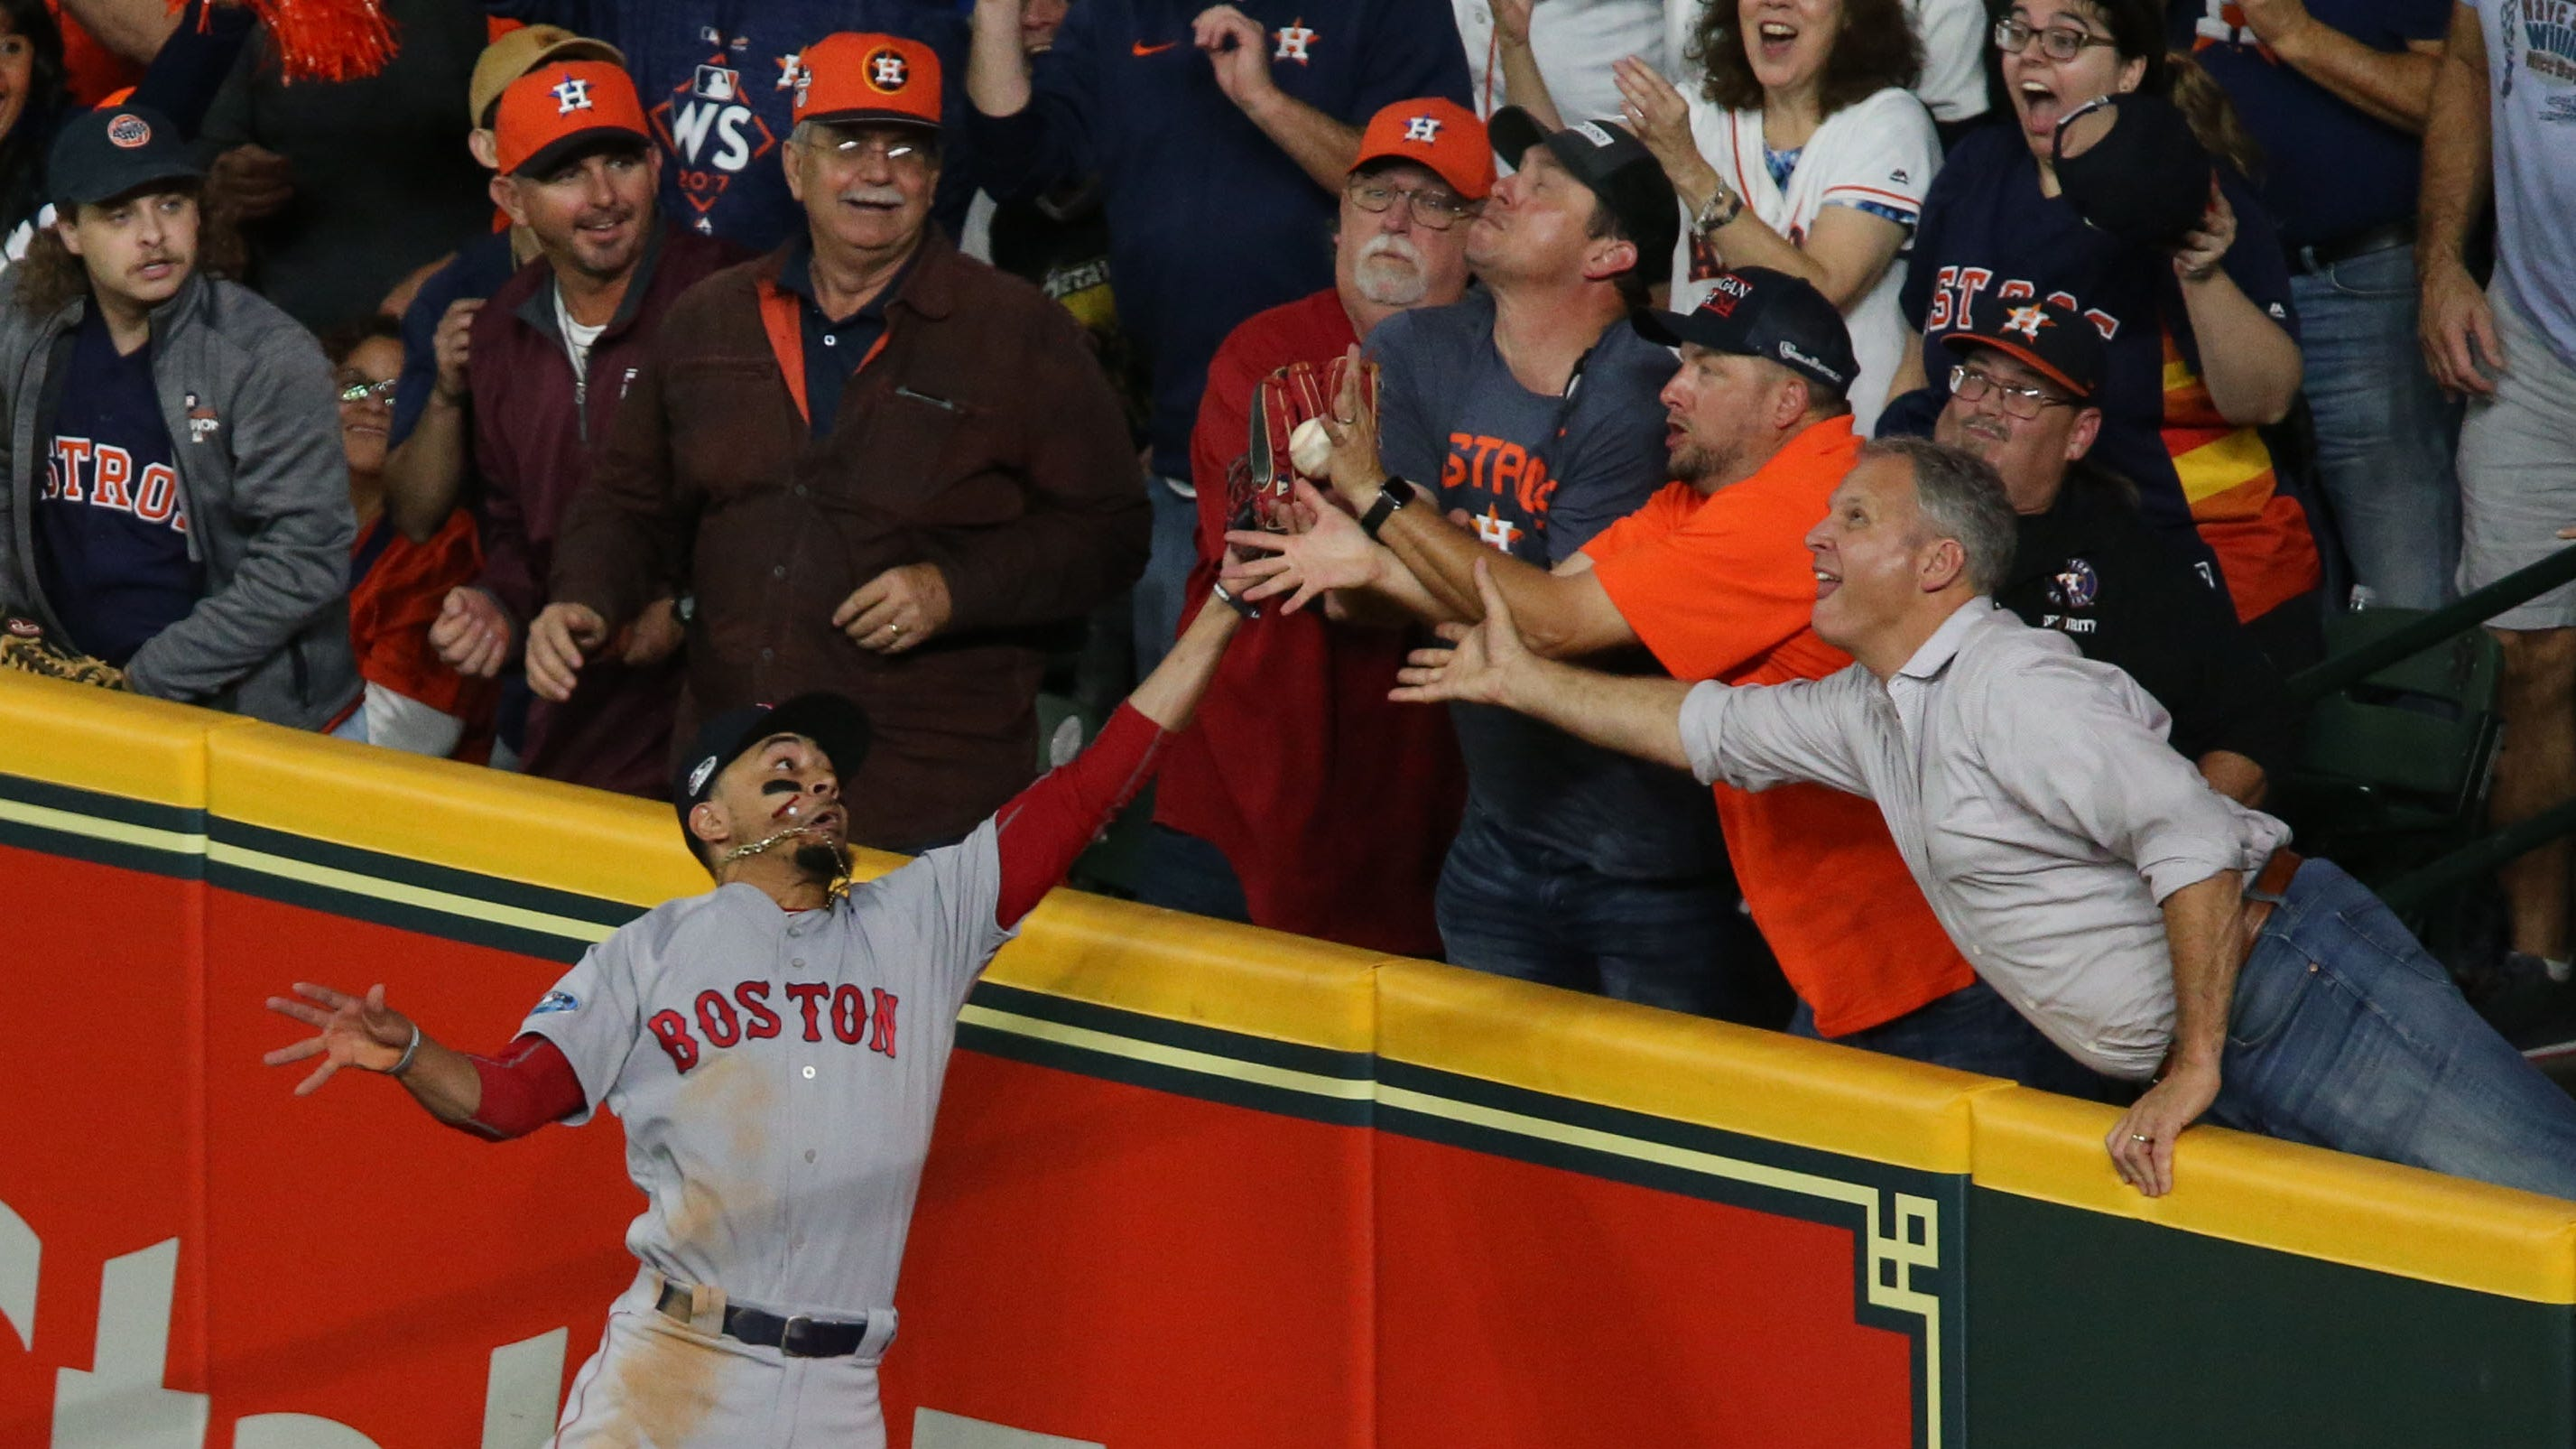 Red Sox right fielder Mookie Betts tries to catch a ball hit by Astros second basman Jose Altuve during the first inning of Game 4 of the ALCS. The play was ruled fan interference.